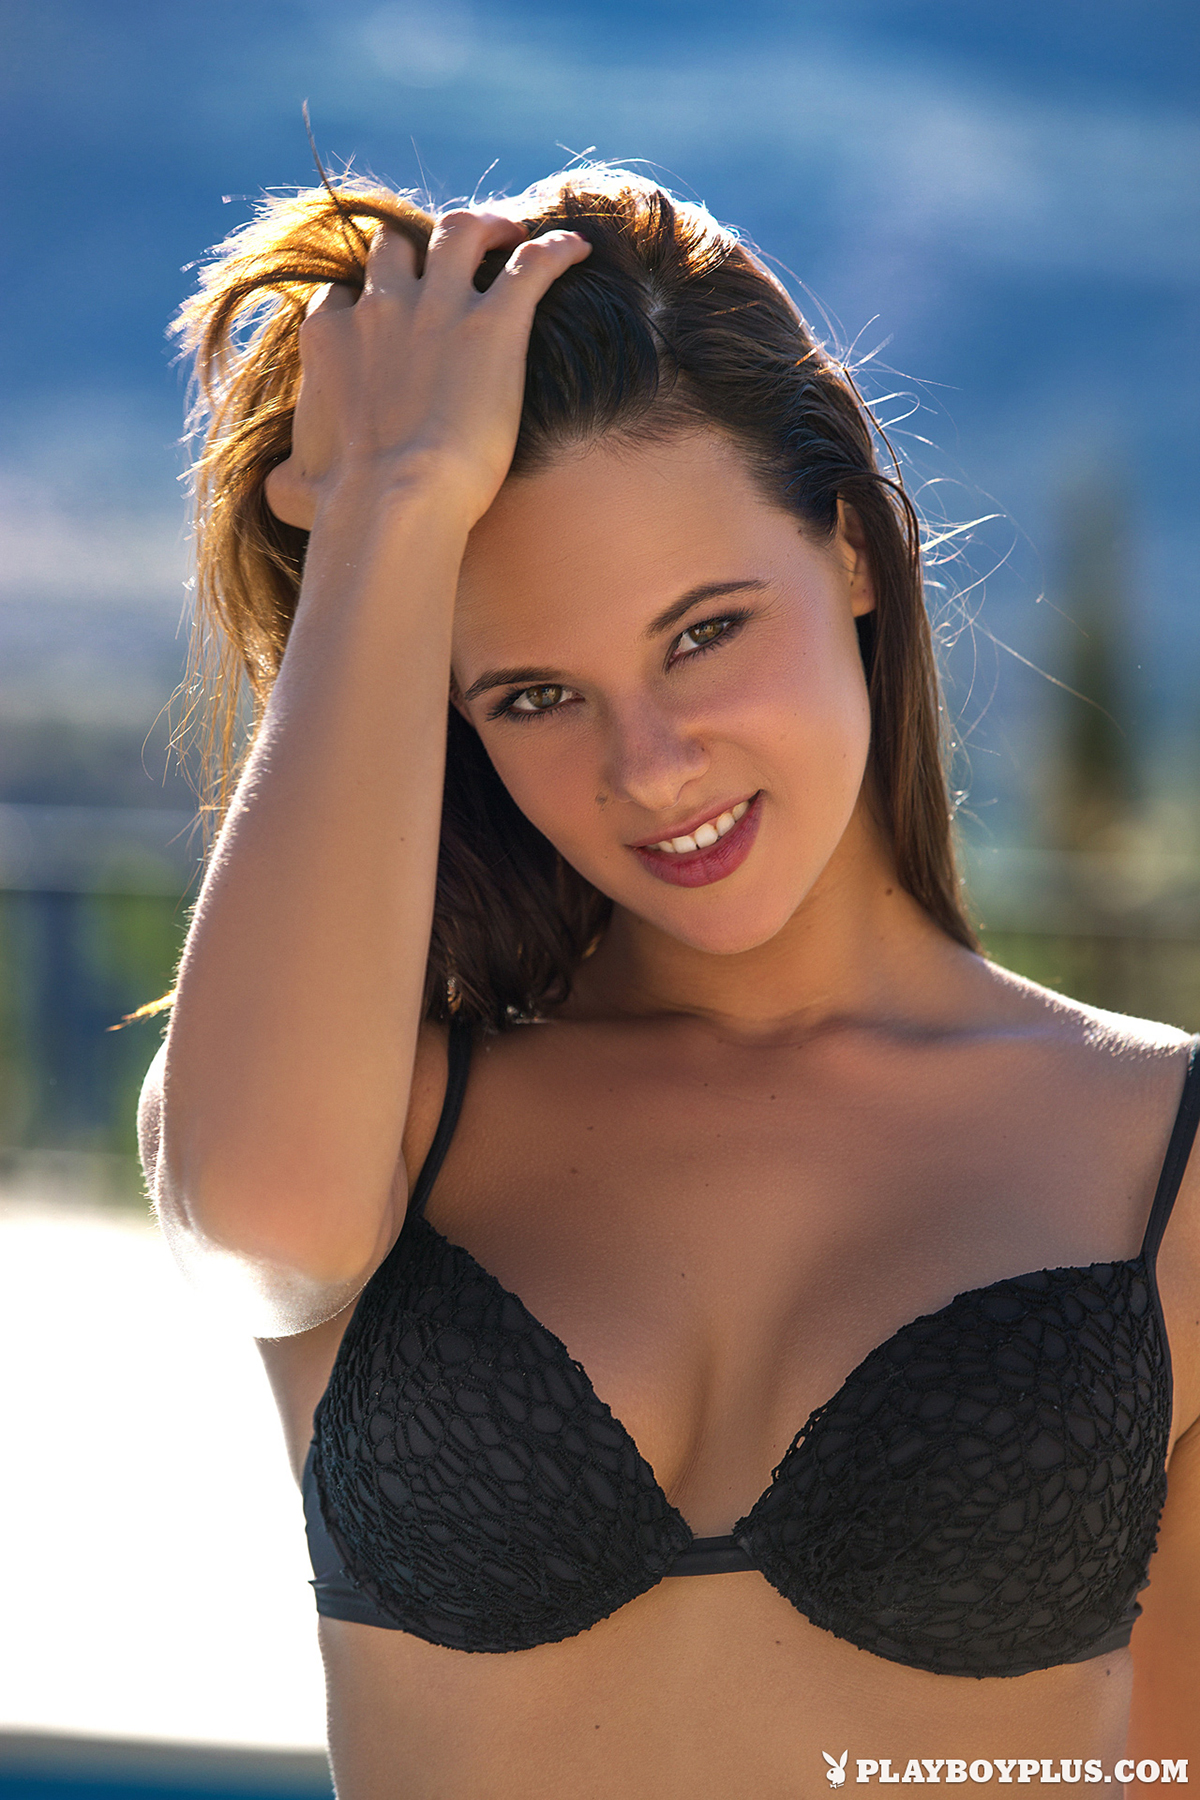 Sunkissed Raise Via Playboy - 09